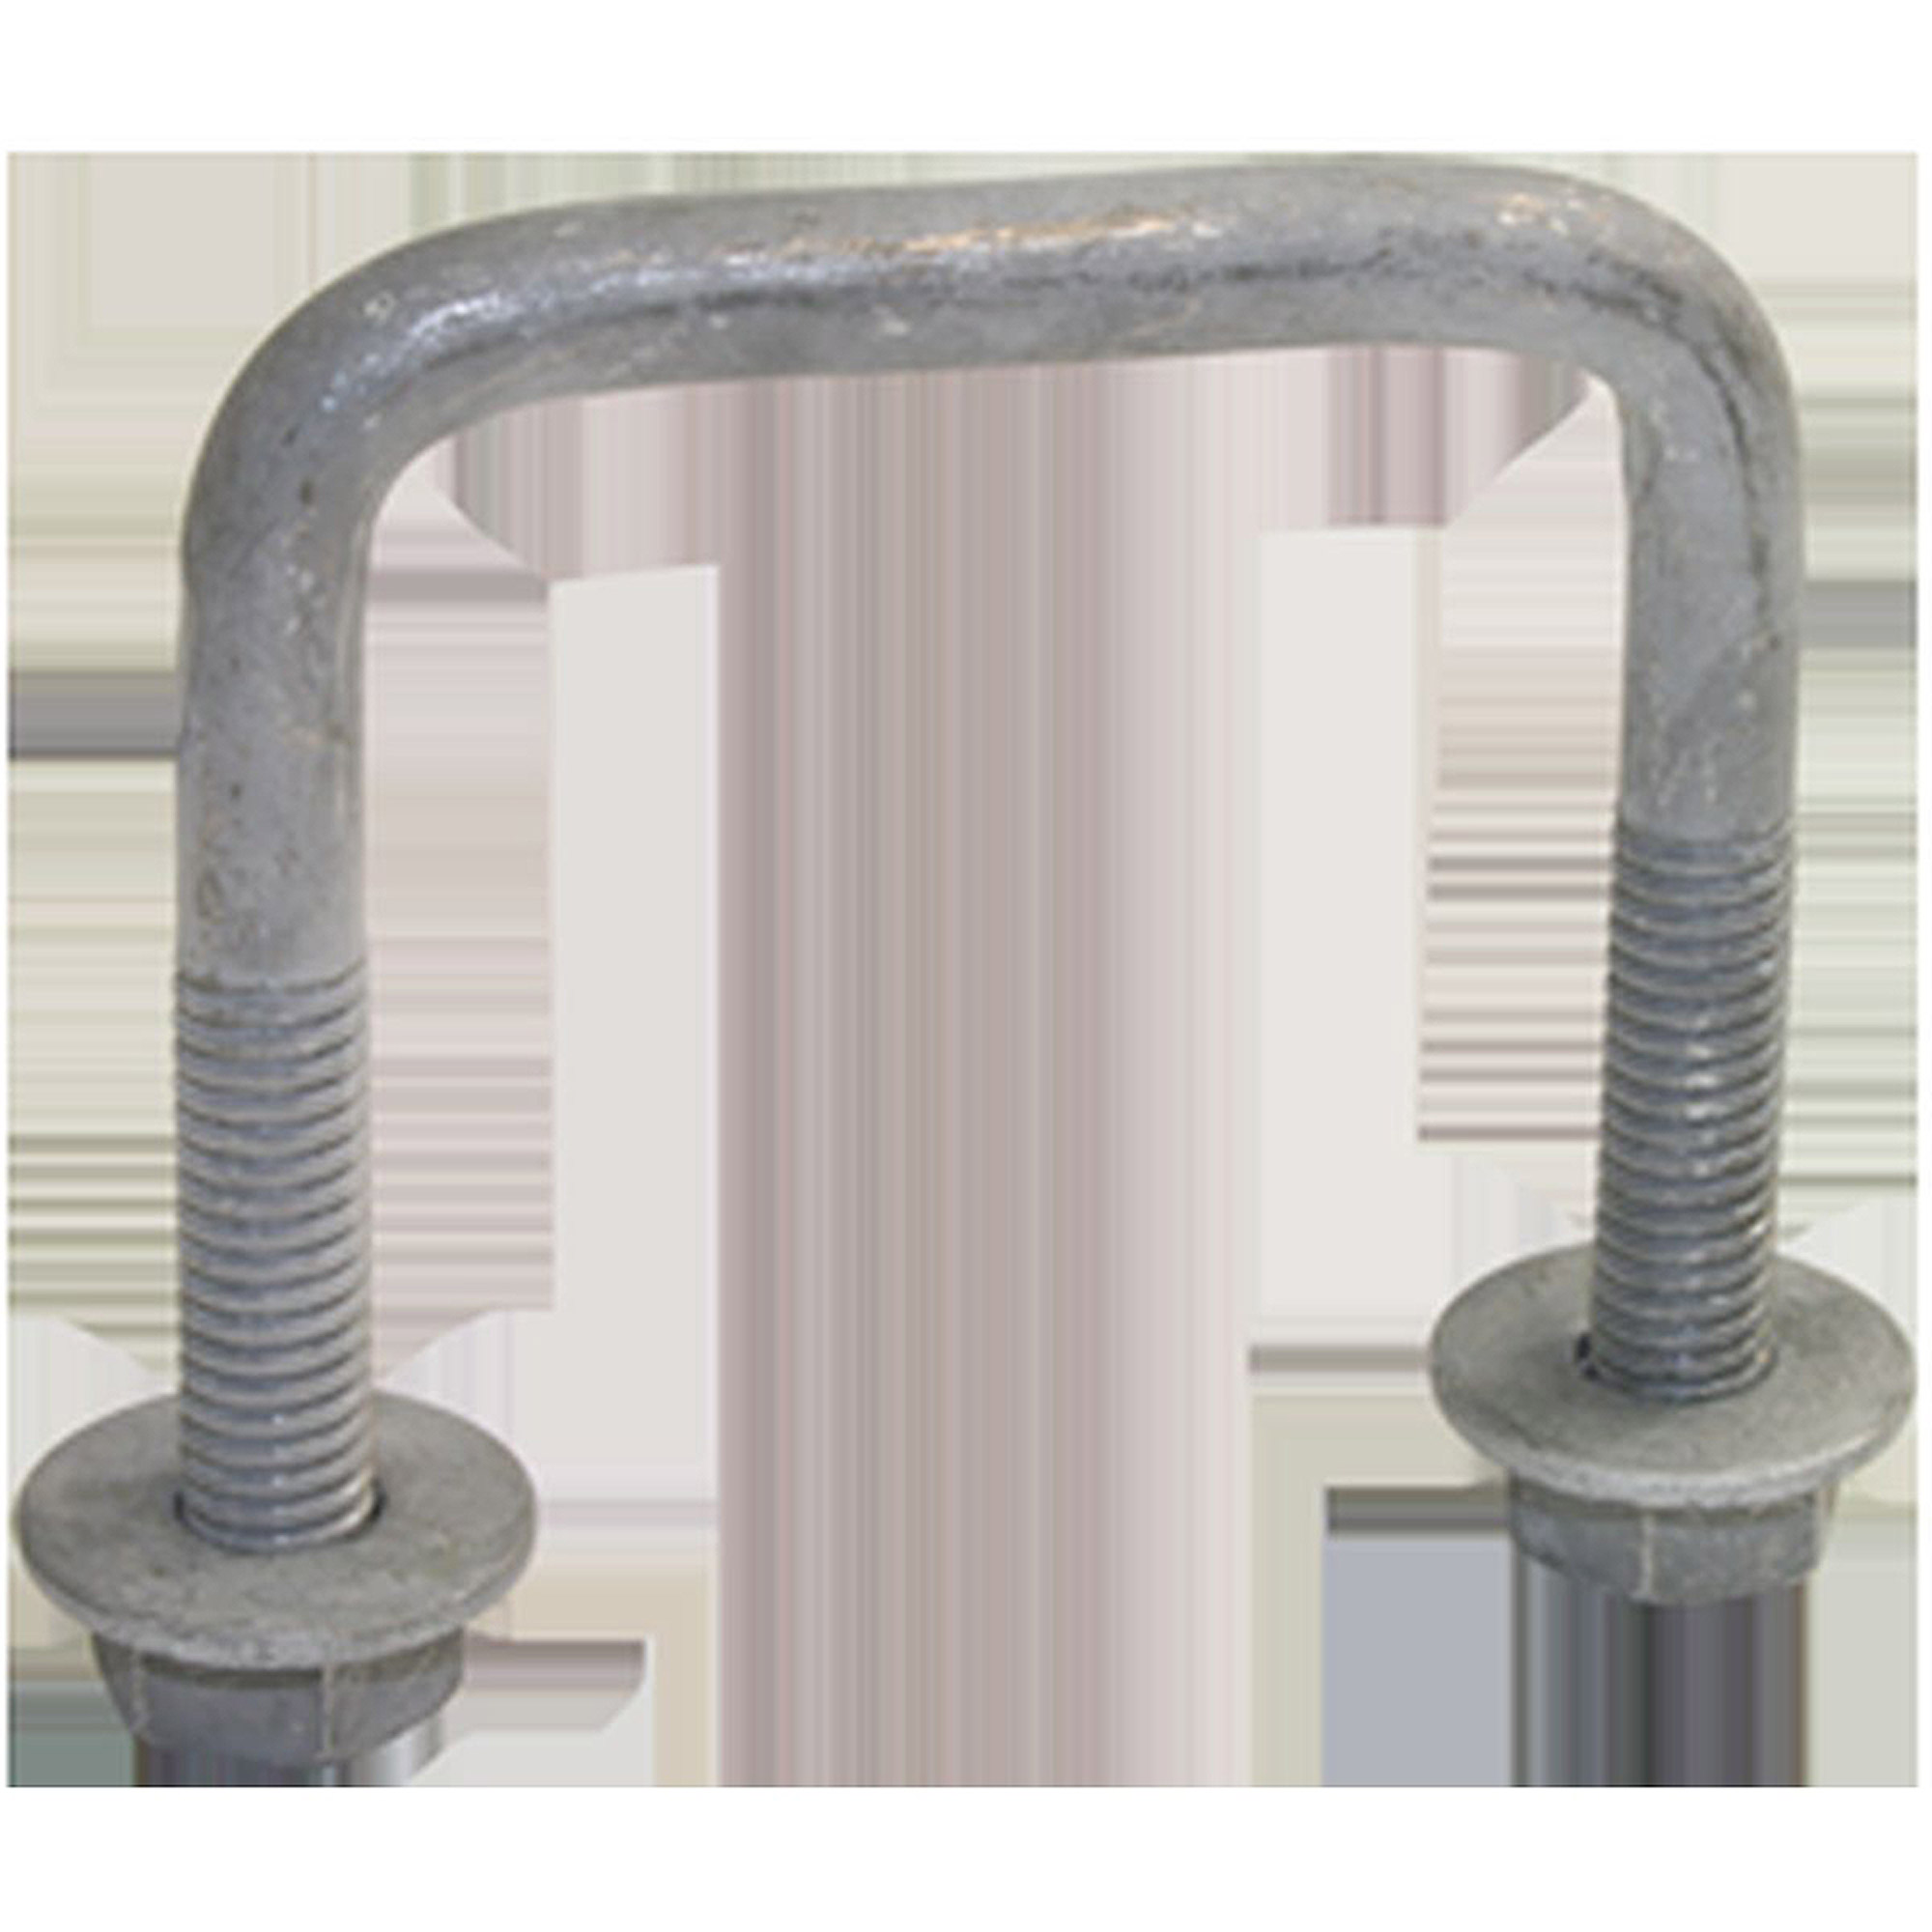 "SeaSense 1/2"" x 3-1/16"" x 3-3/16"" Galvanized U-Bolt"